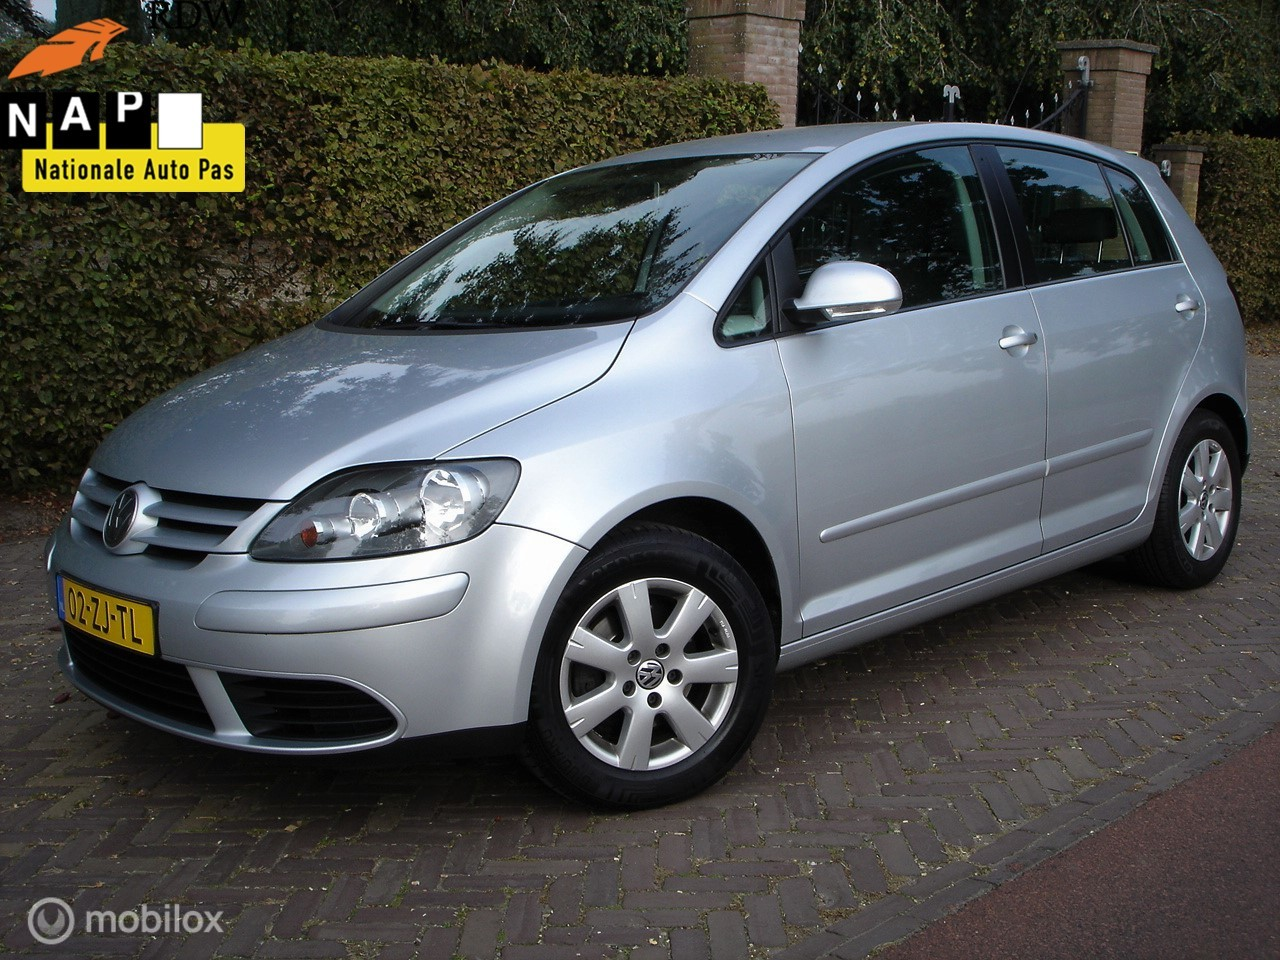 Volkswagen Golf Plus 1.4 Optive (Bj 2008) Airco/APK 09-2021